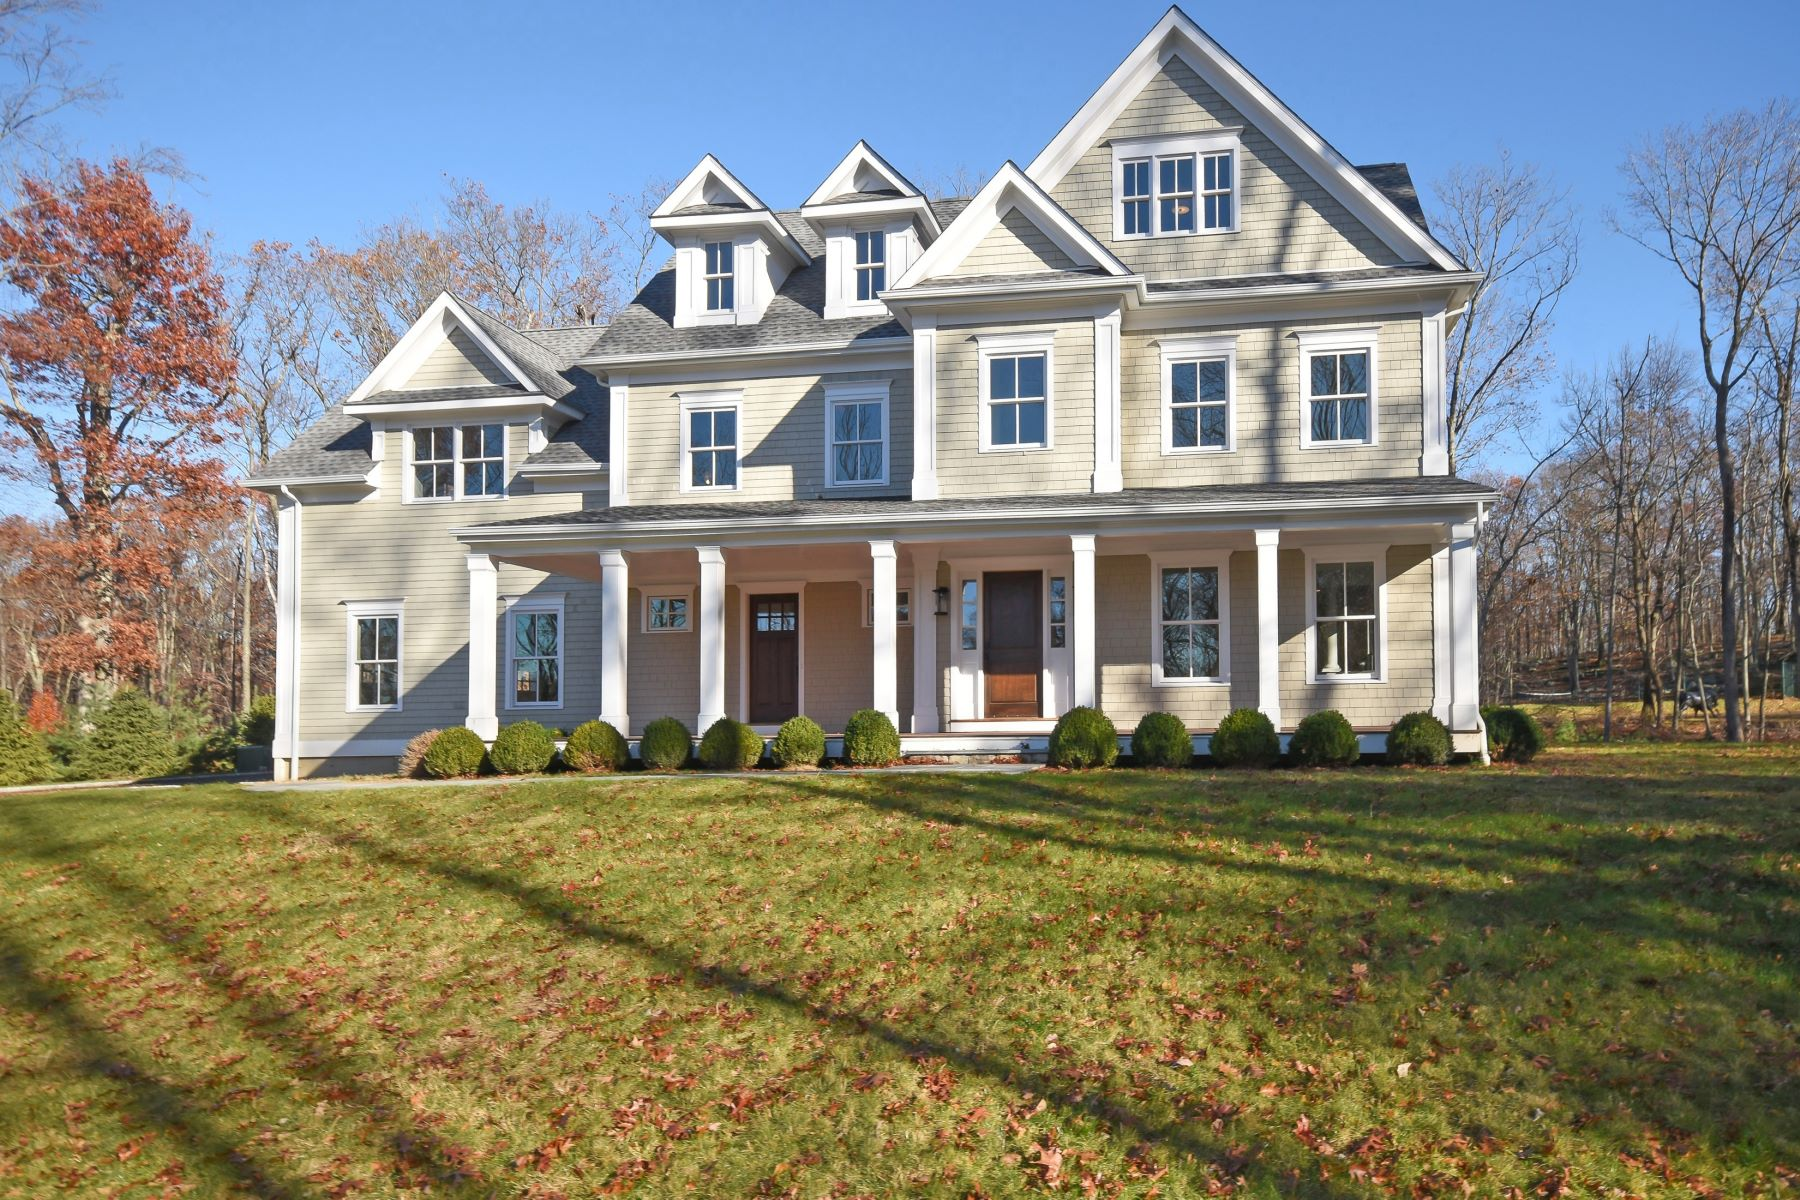 Single Family Home for Sale at Singing Oaks Neighborhood 24 Hillcrest Lane Weston, Connecticut 06883 United States